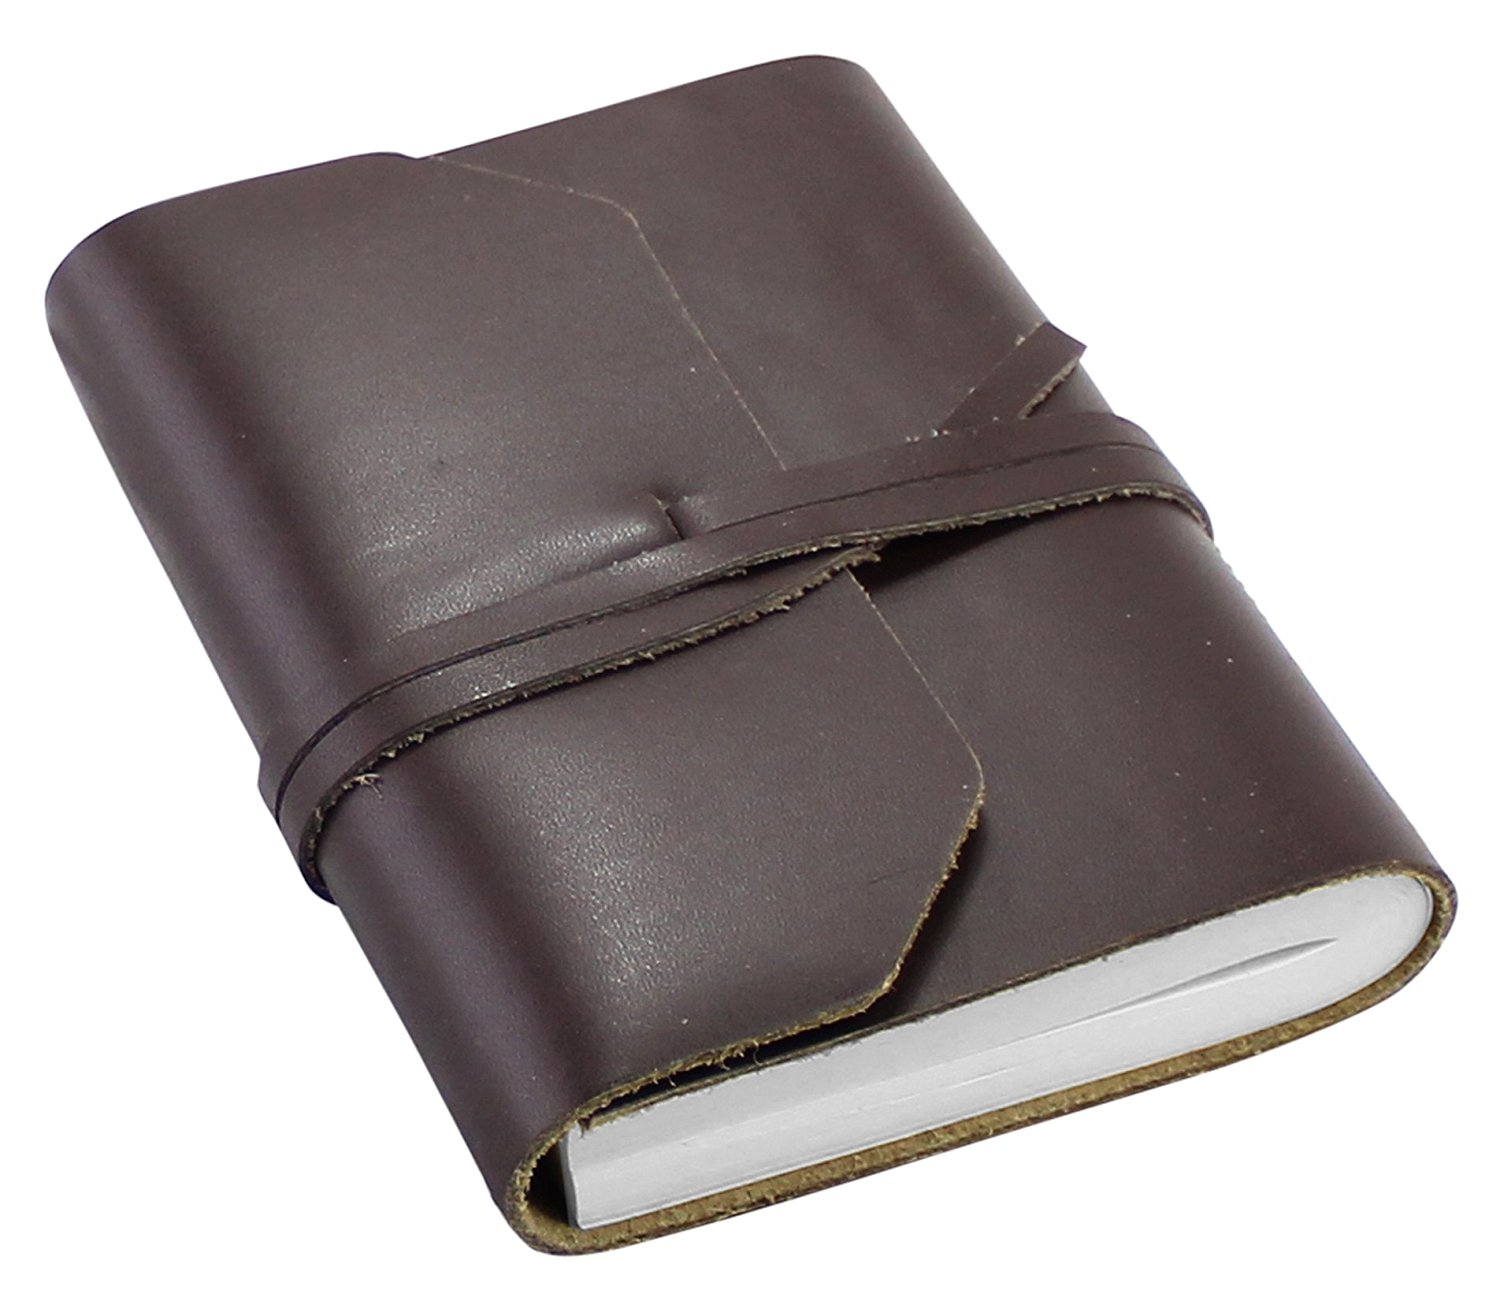 Leather Journal Travel Notebook - Handmade Italian Style Writing Travelers Diary For Men and Women To Write In - Plain Unlined Pages, 3.5 x 5 Inches